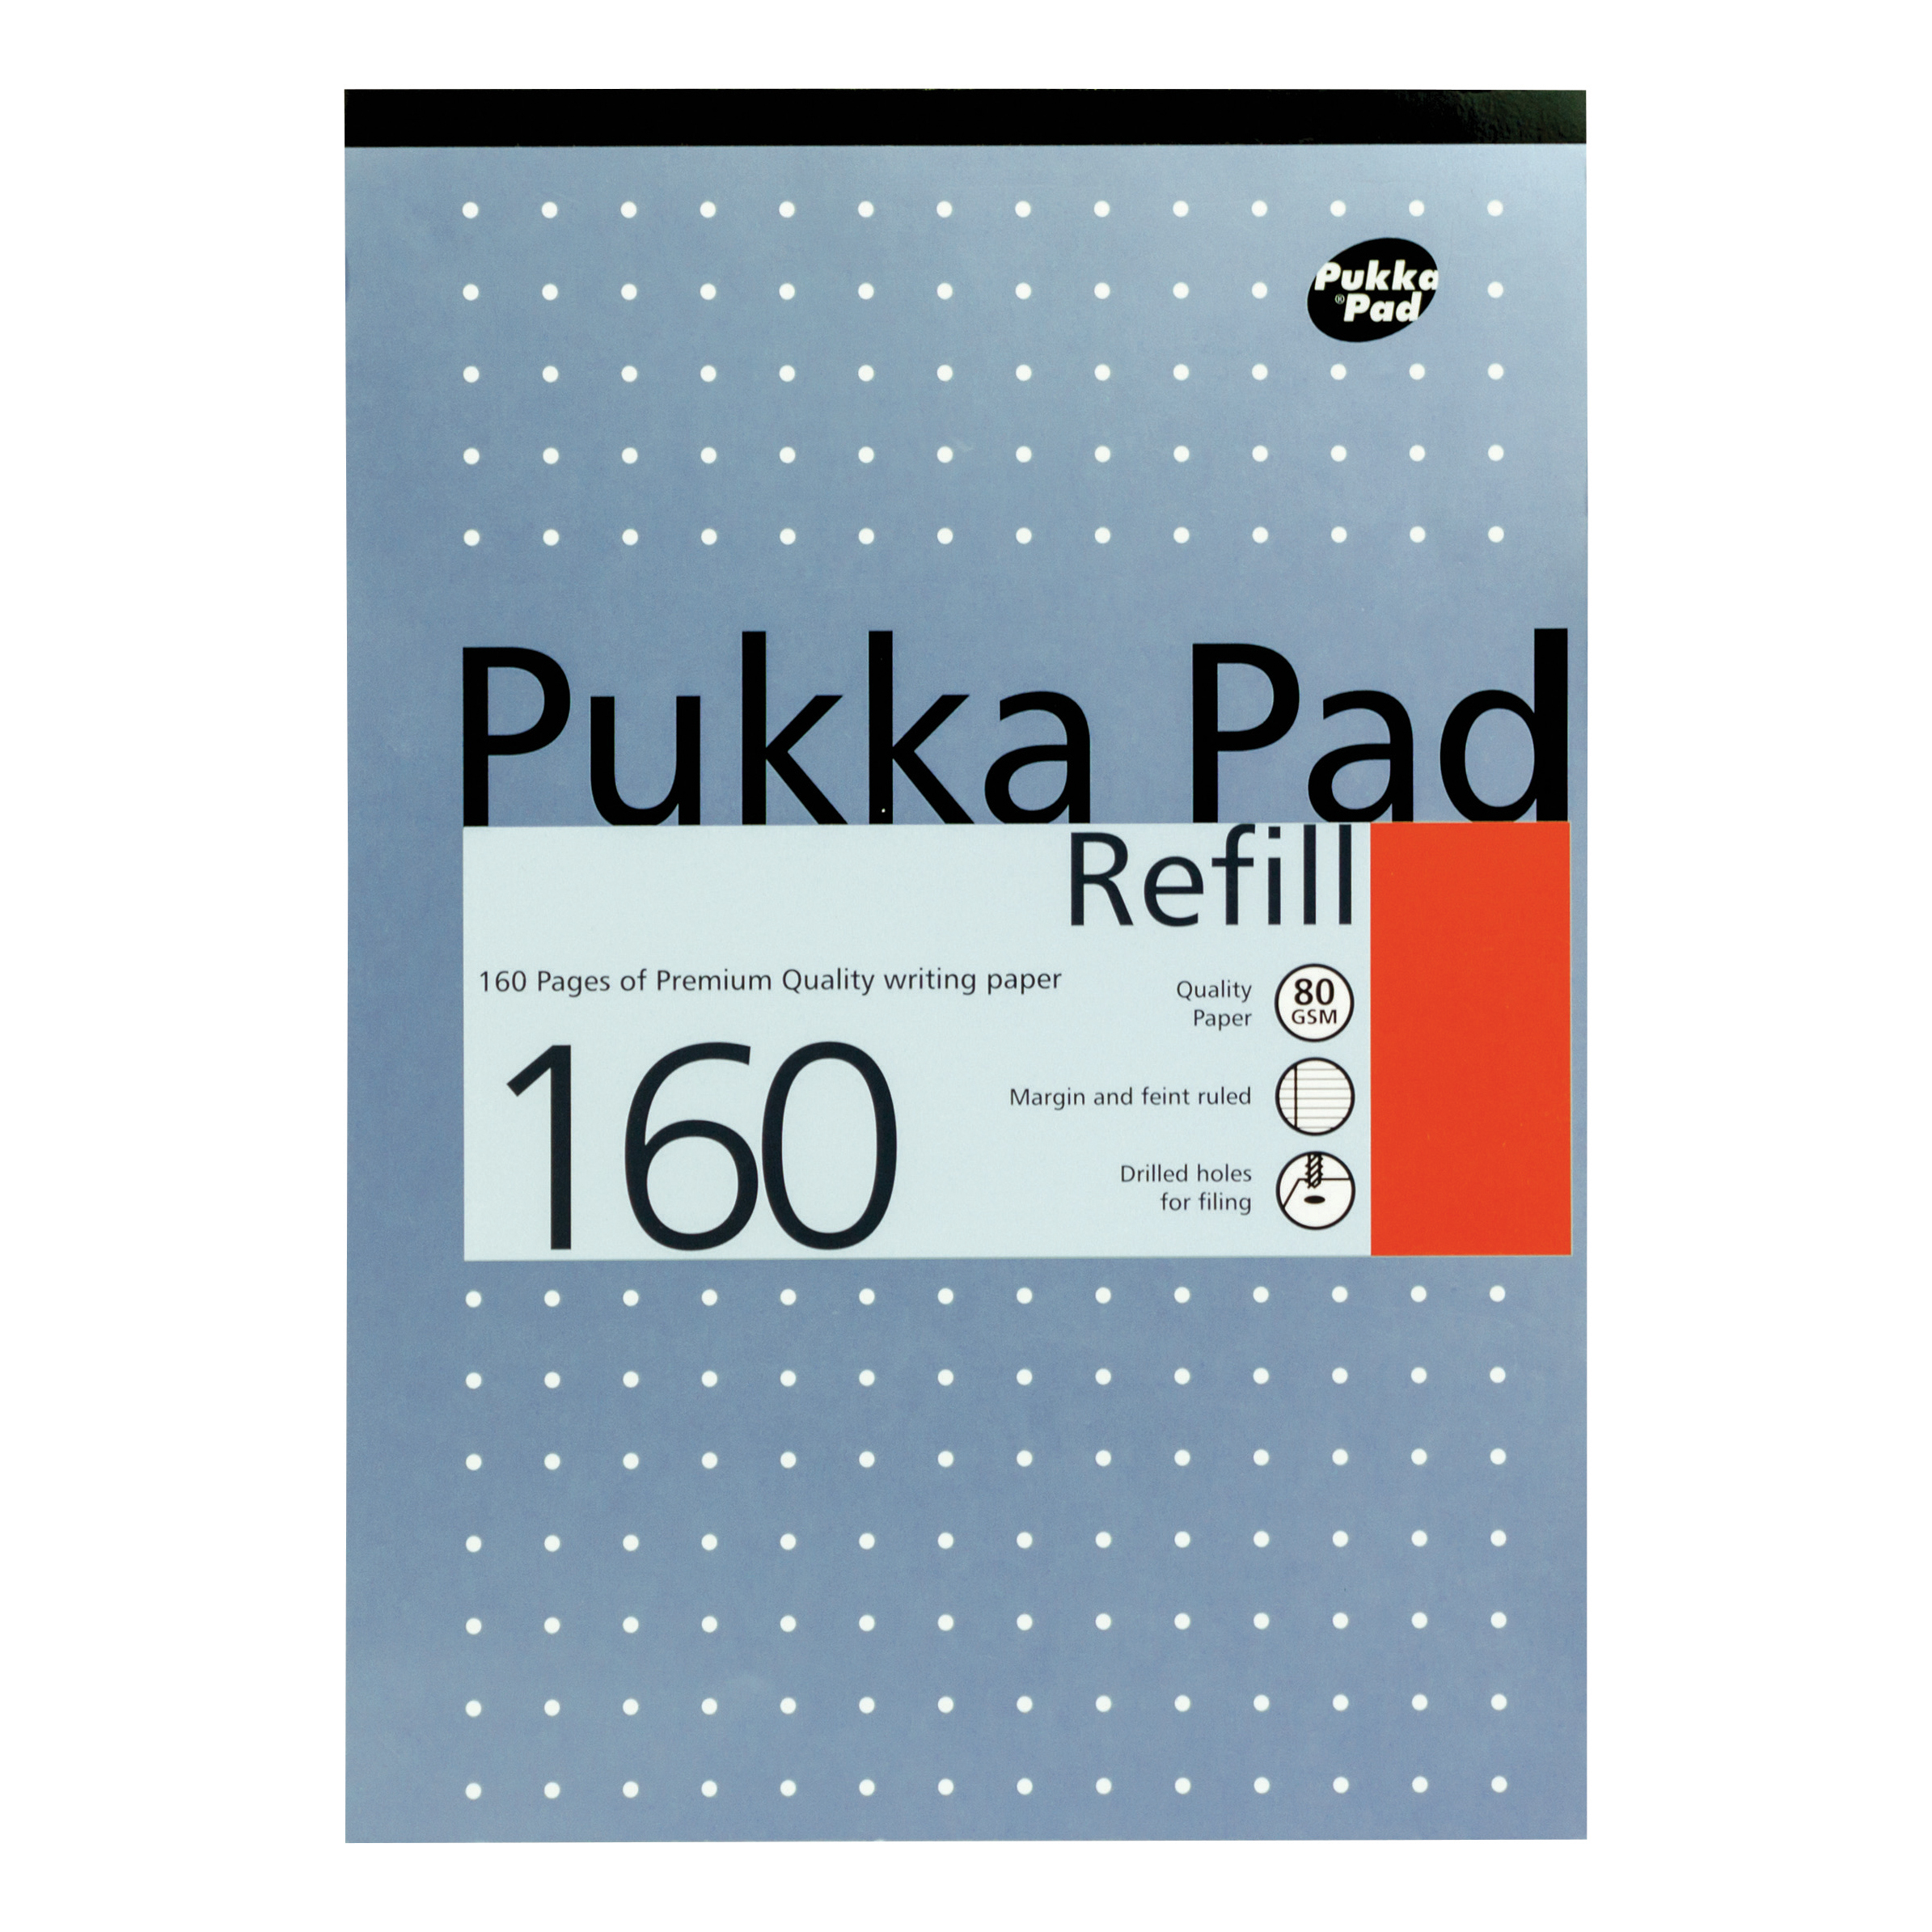 Pukka Pad Refill Pad Headbound 80gsm Ruled Margin Punched 4 Holes 160pp A4 Assorted Ref REF80/1 Pack 6